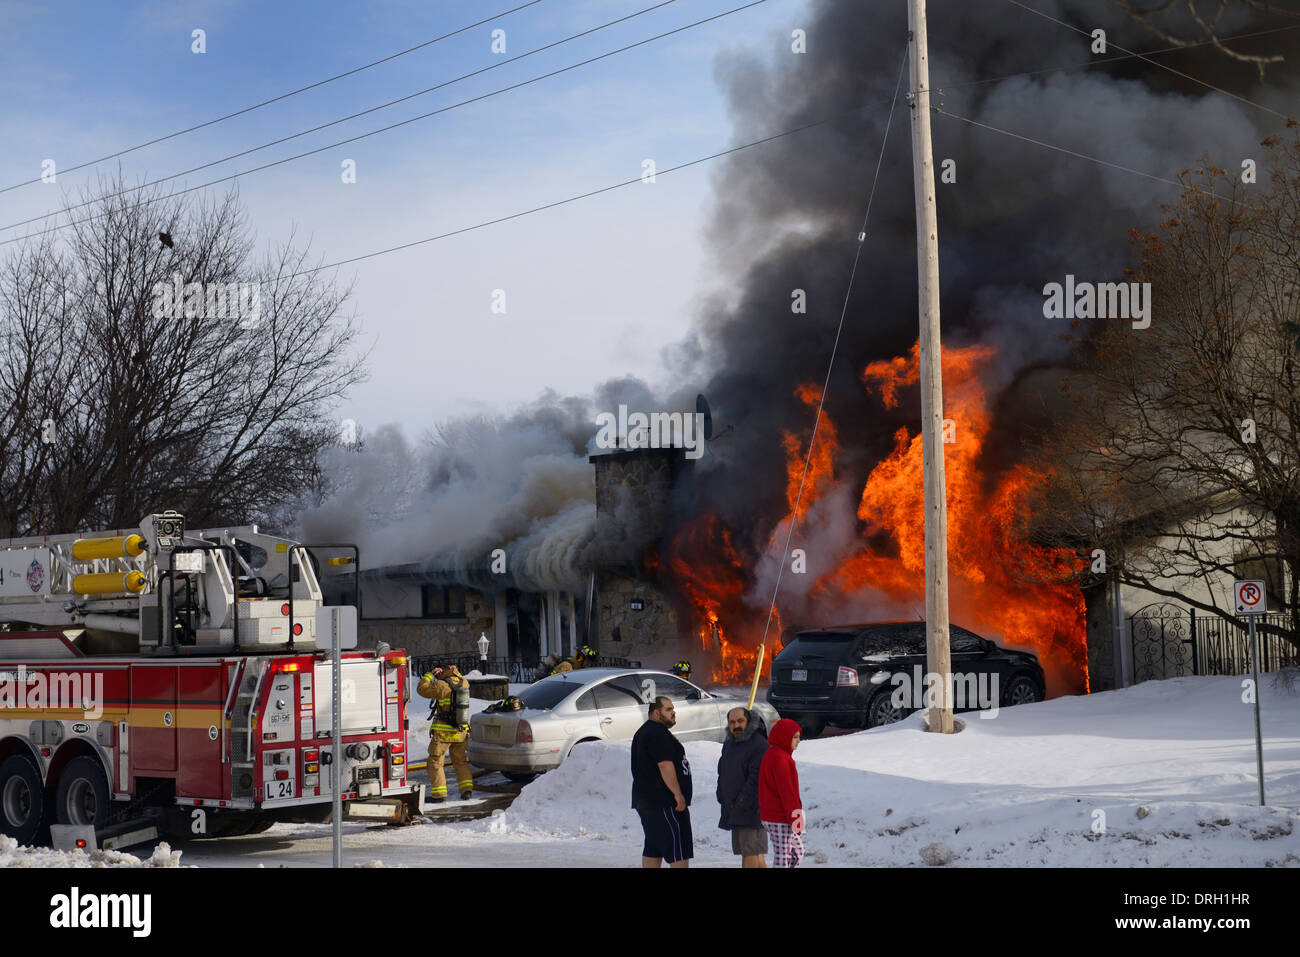 Residents outside in night clothes in winter with snow while house goes up in flames with firefighters spraying water on fire in Ottawa - Stock Image